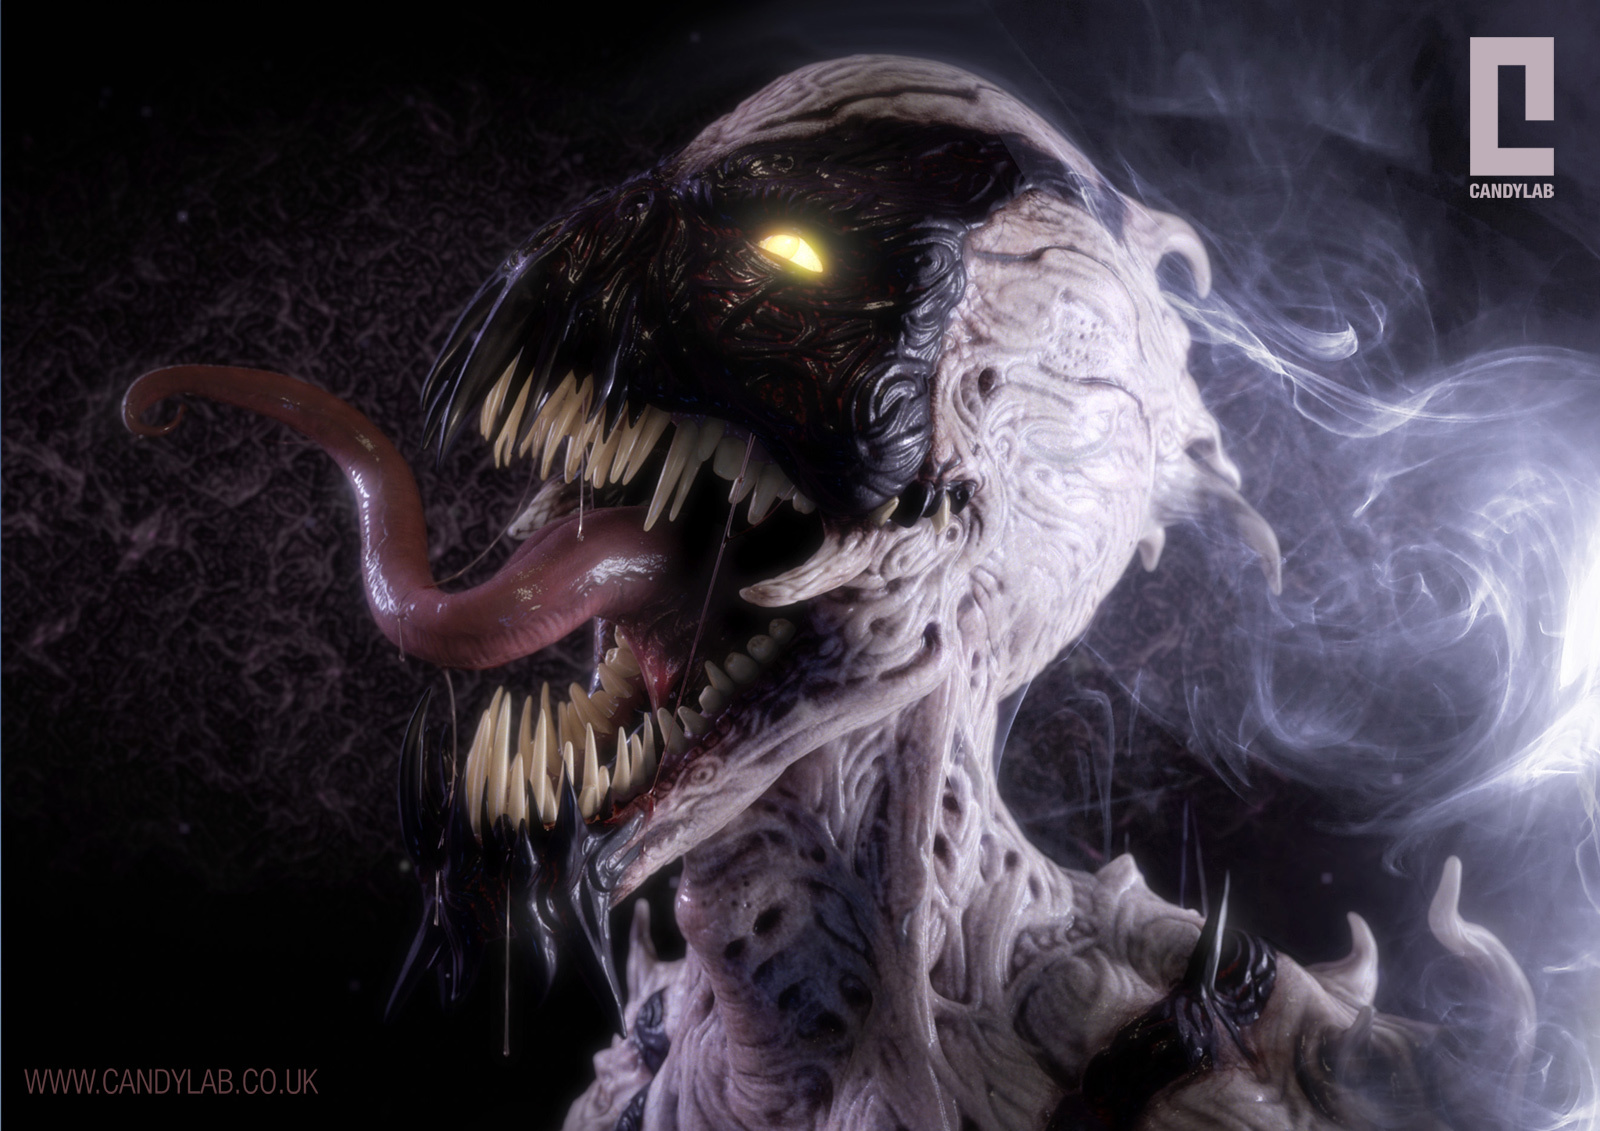 Monsters AntiVenom Spiderman abstract HD Wallpaper